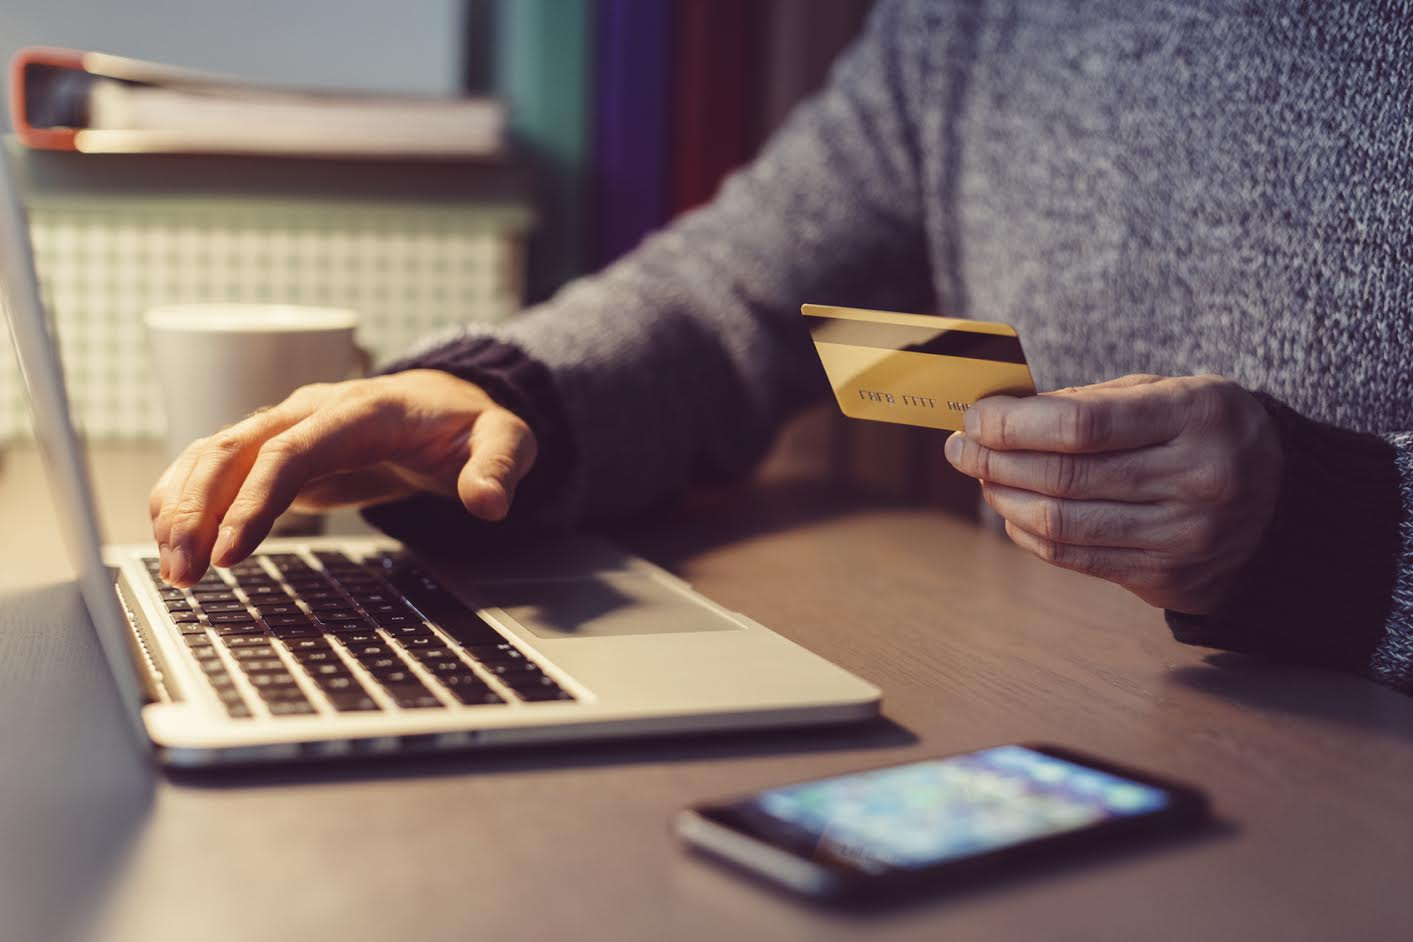 credit card info needed for online purchase - HD1413×942